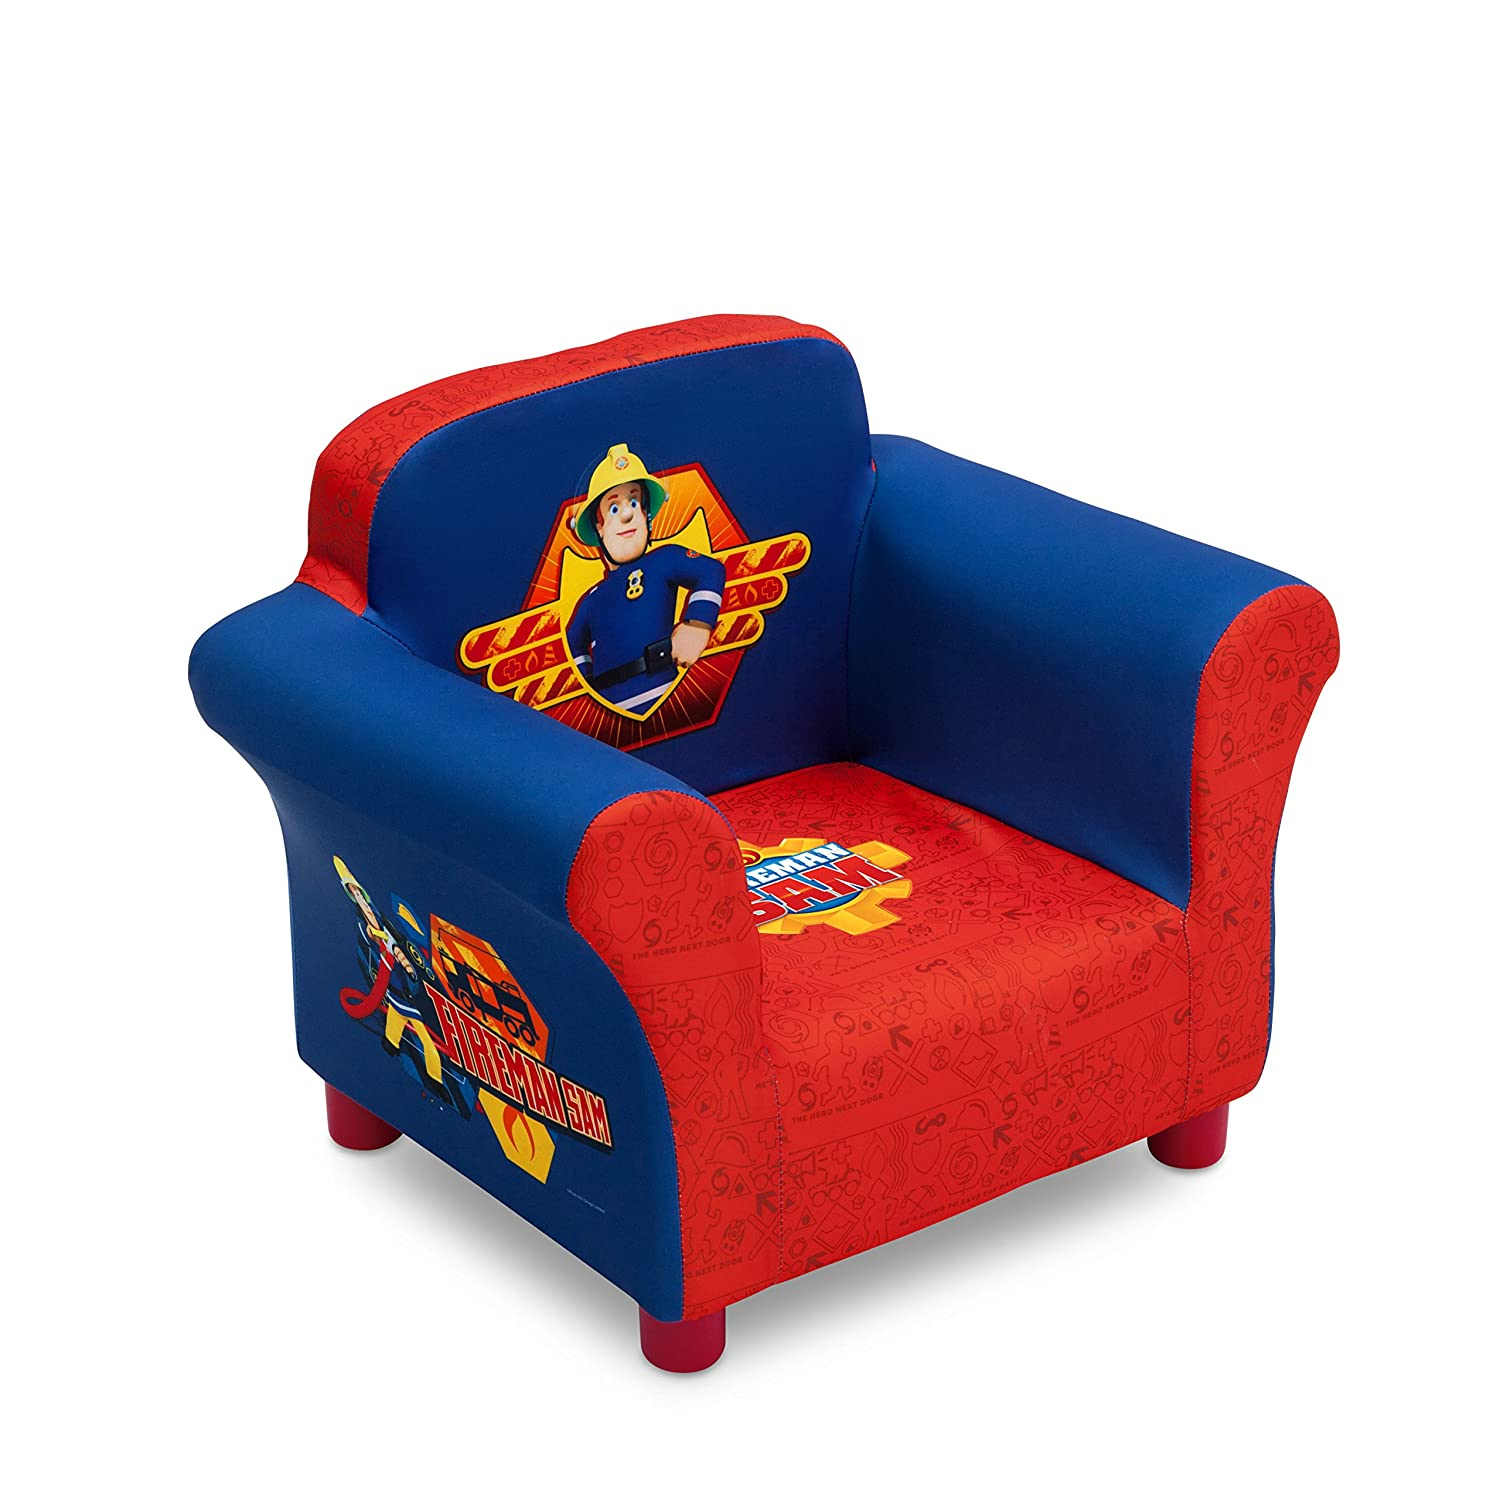 Delta Children Thomas and Friends Children's Upholstered Chair Delta Children Products UP85931TH